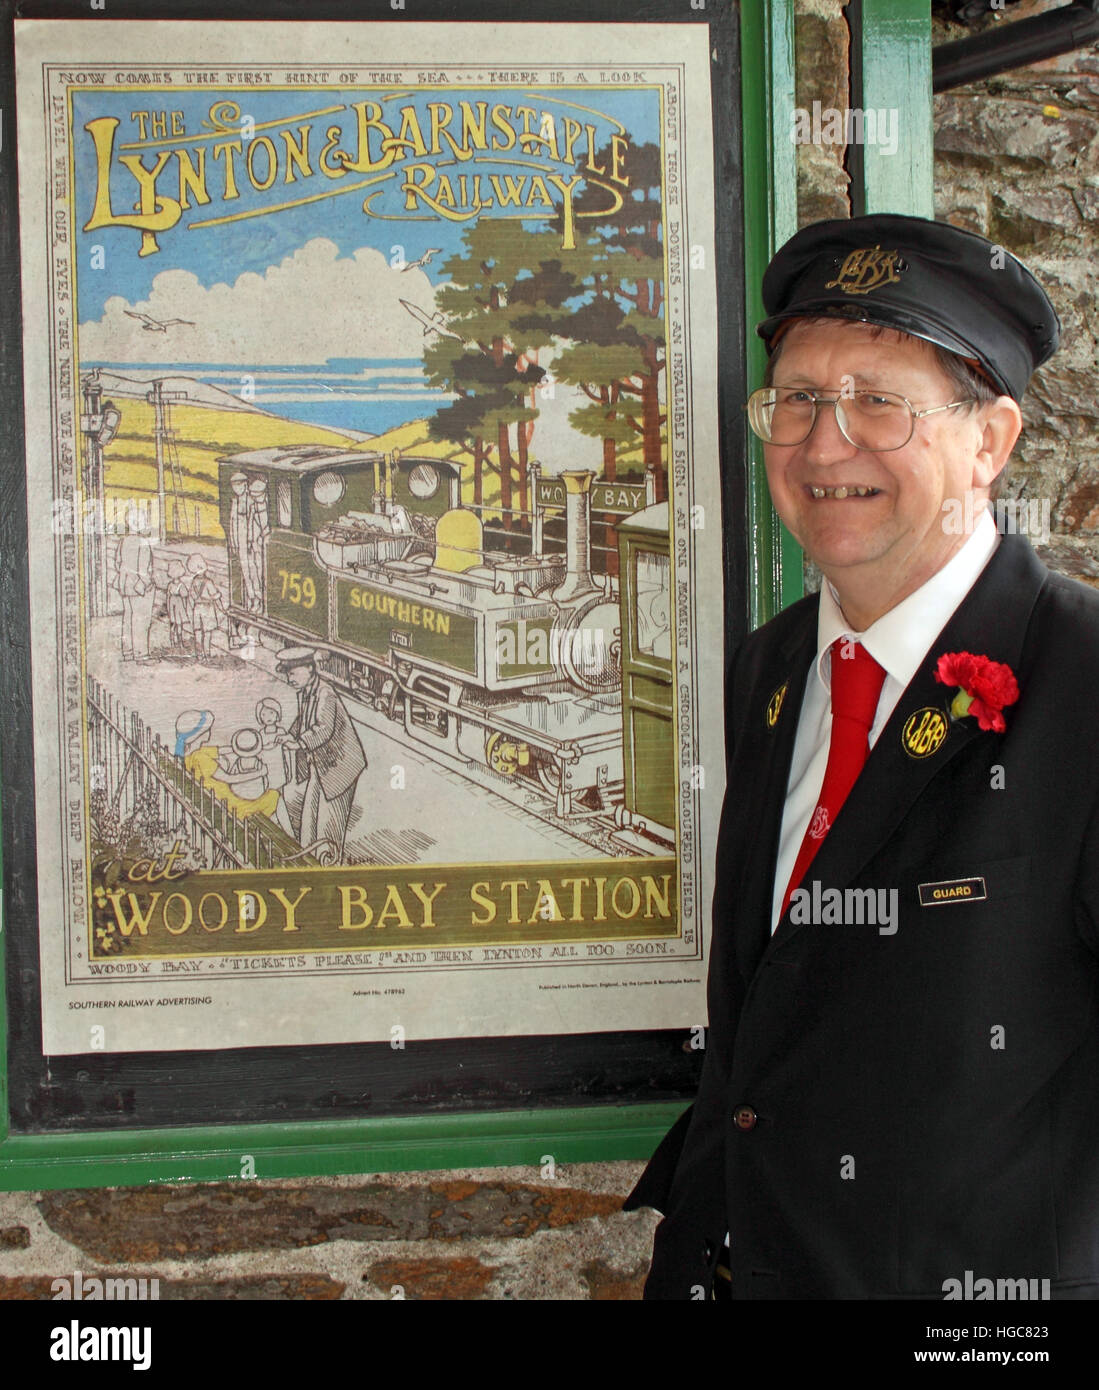 Southern Railway Guard, North Devon, UK - Stock Image